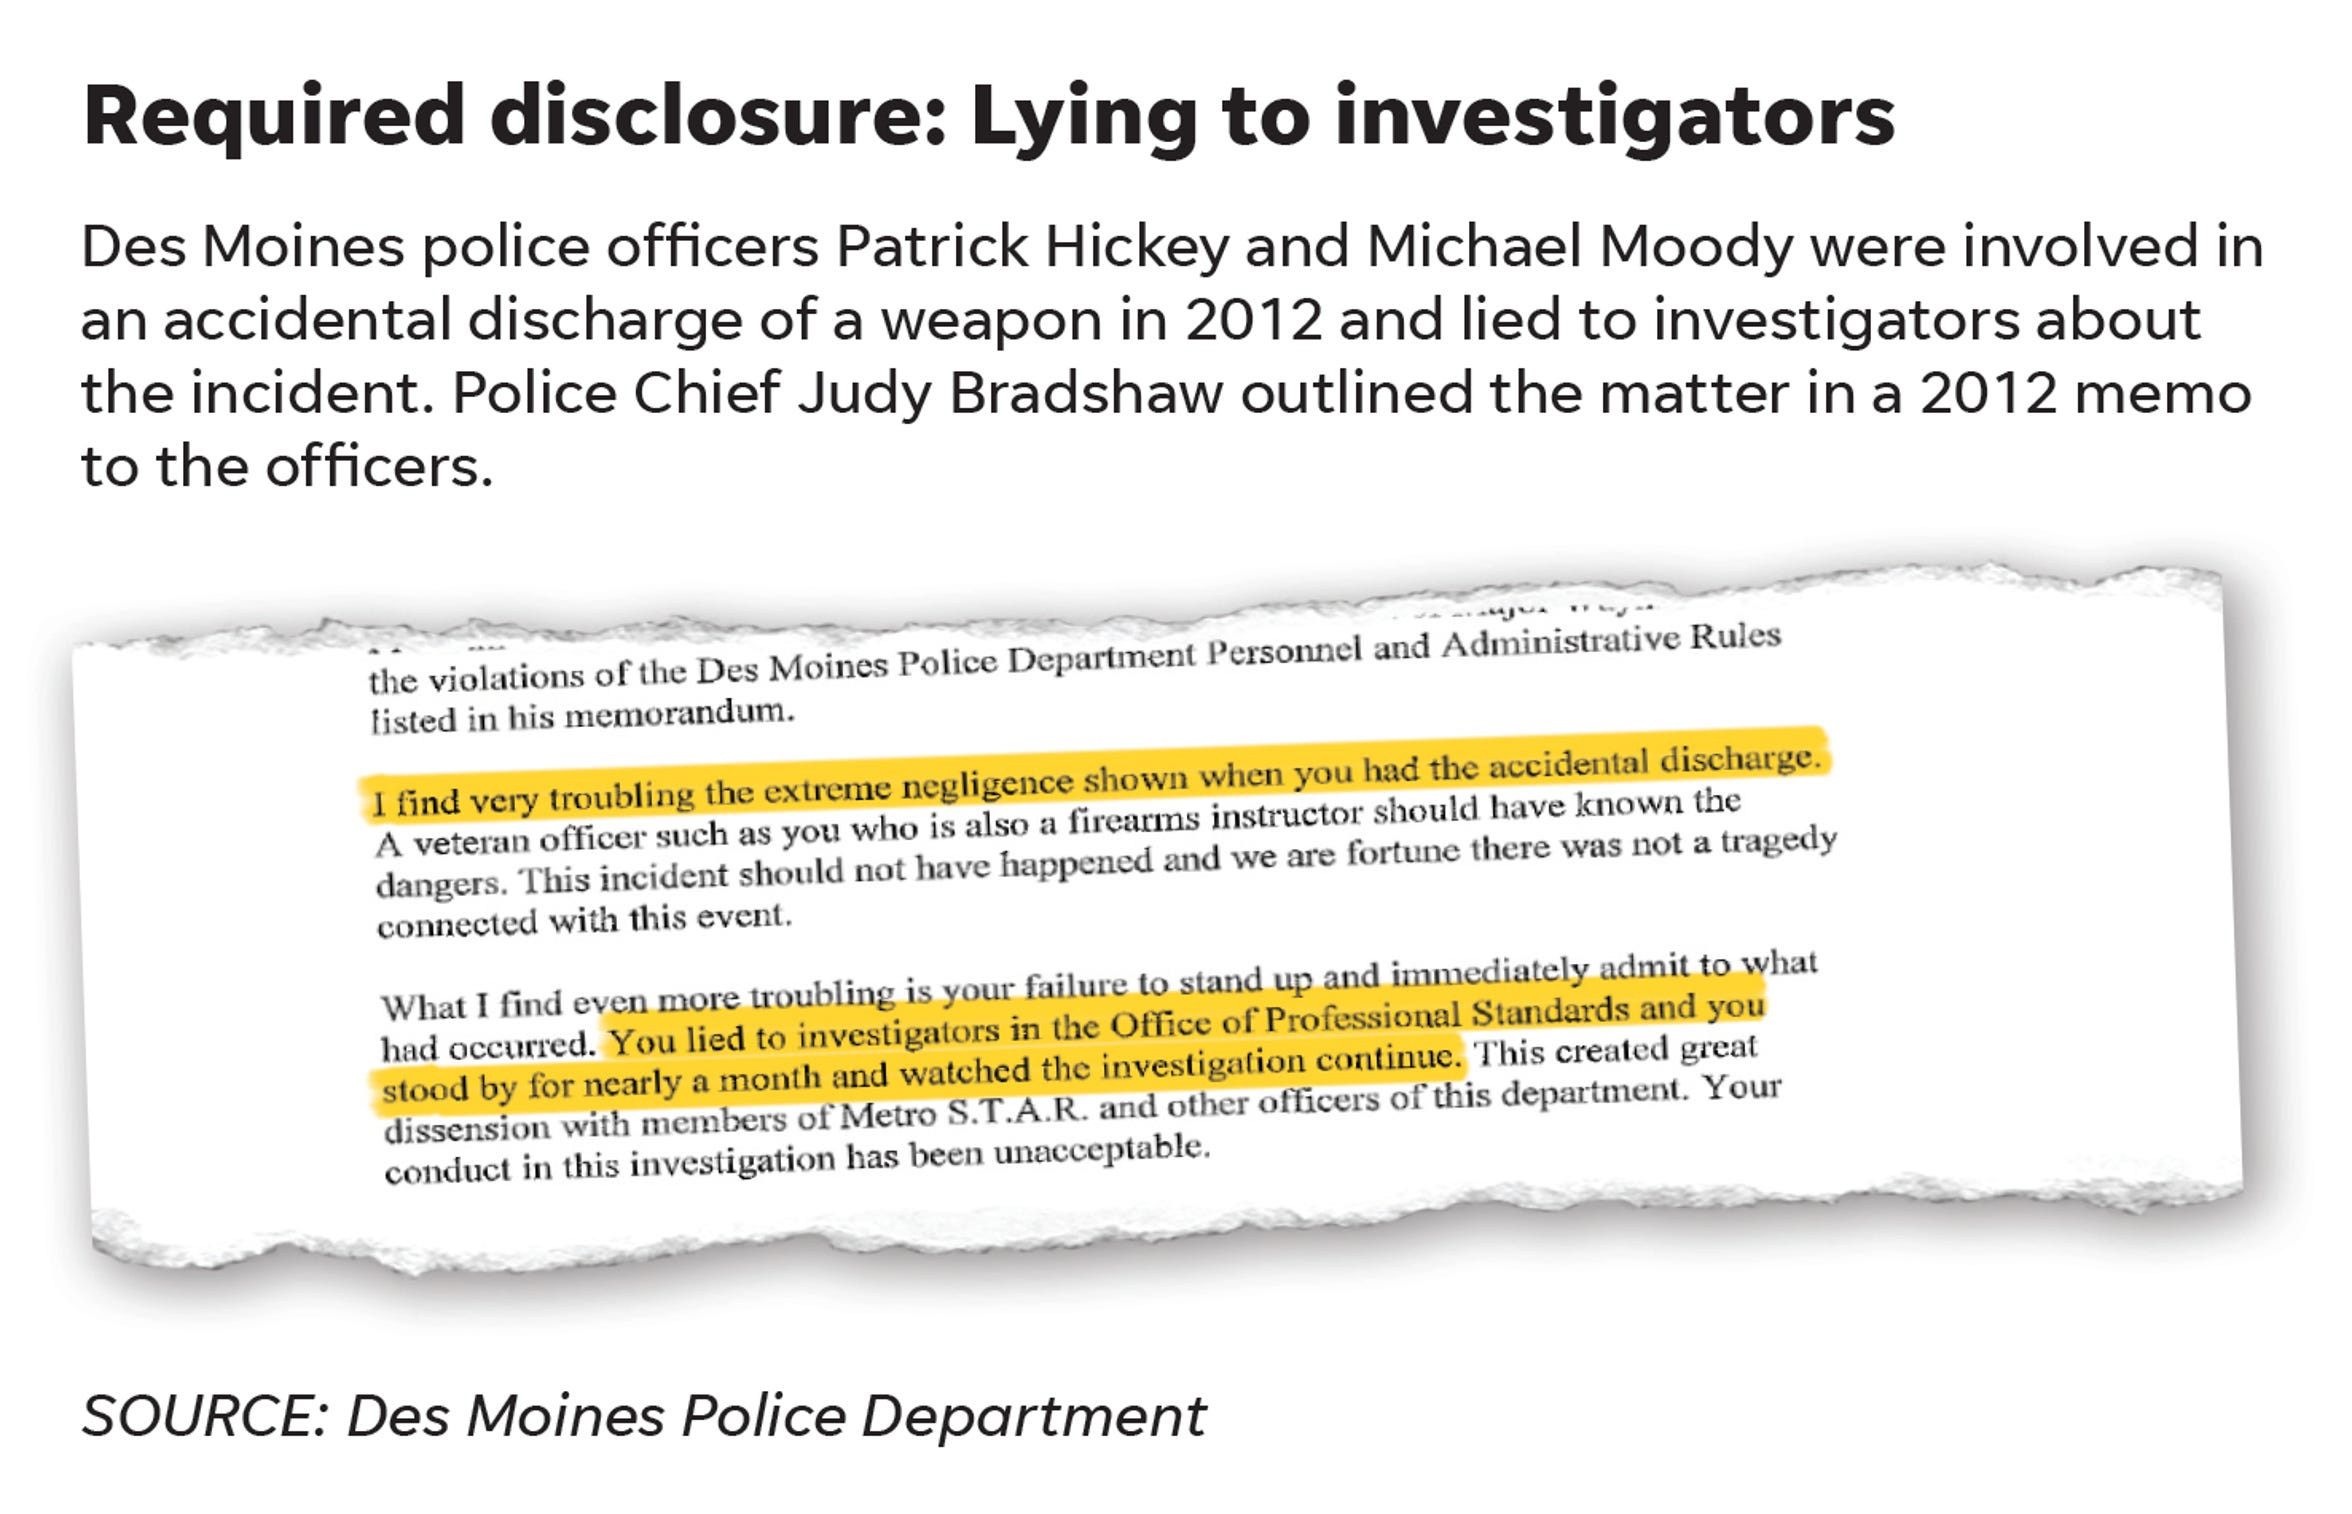 Required disclosure: Lying to investigators